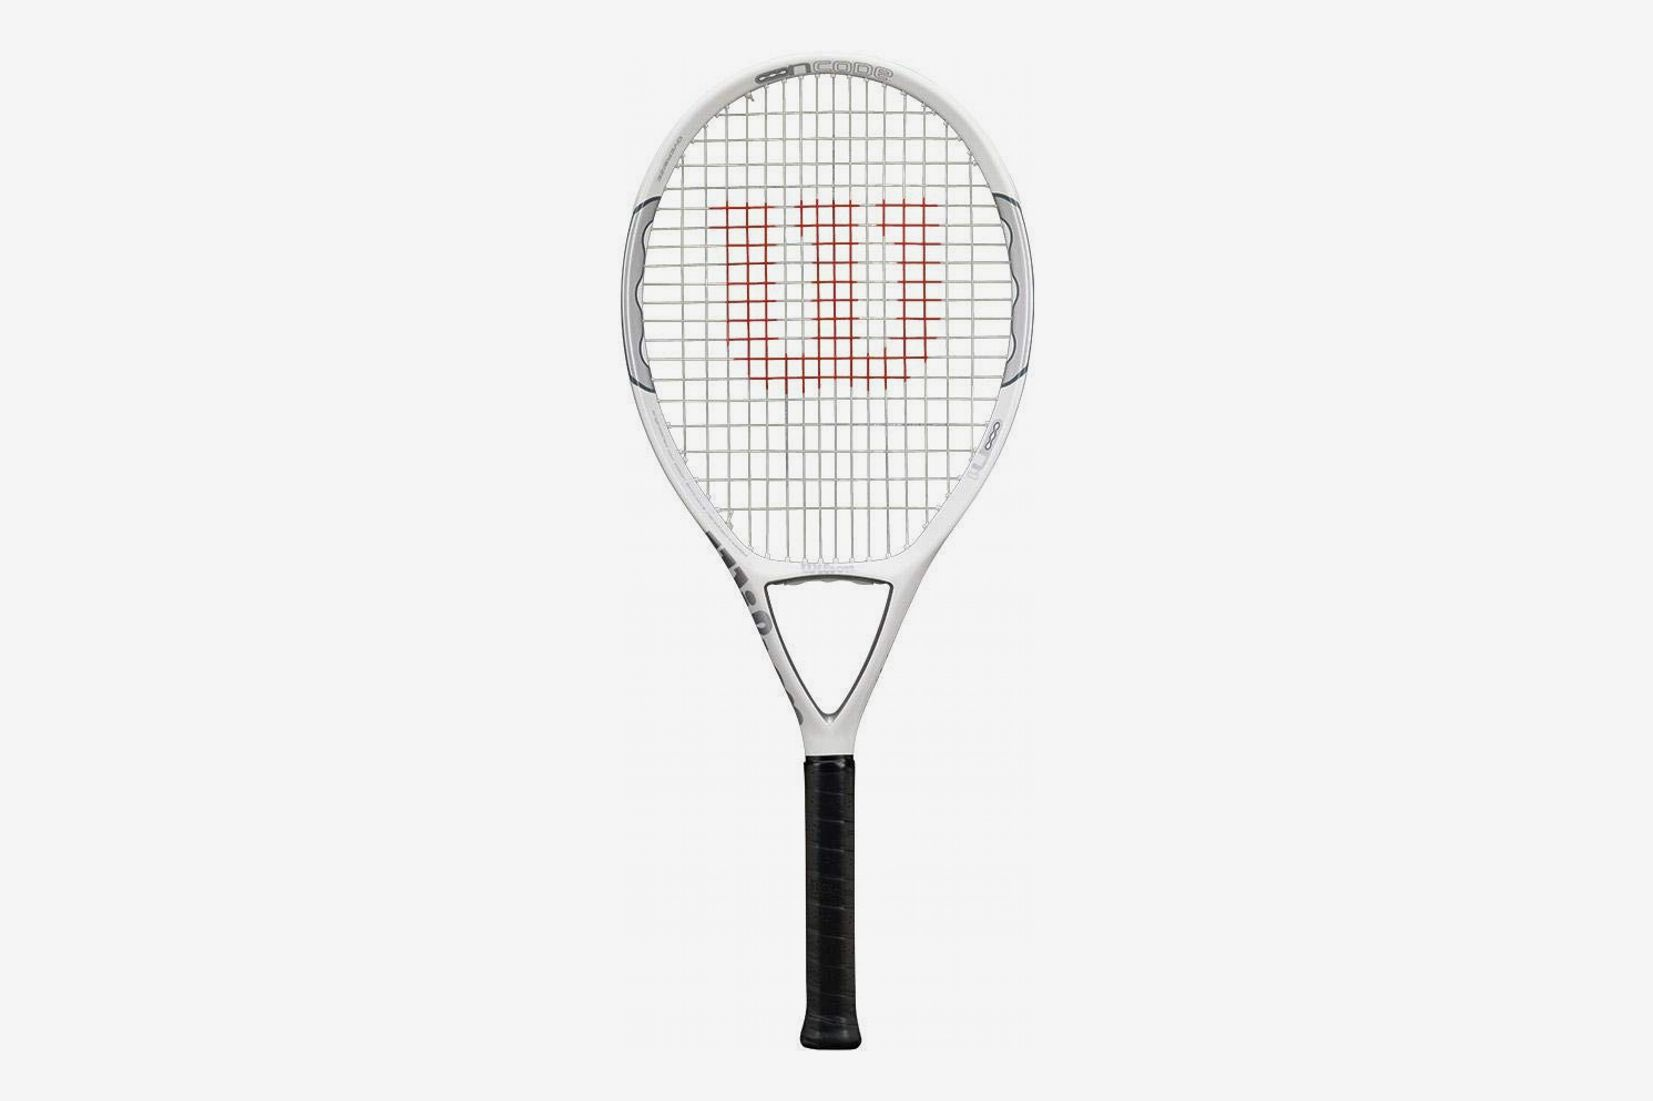 Wilson N1 Tennis Racket (Without Cover)